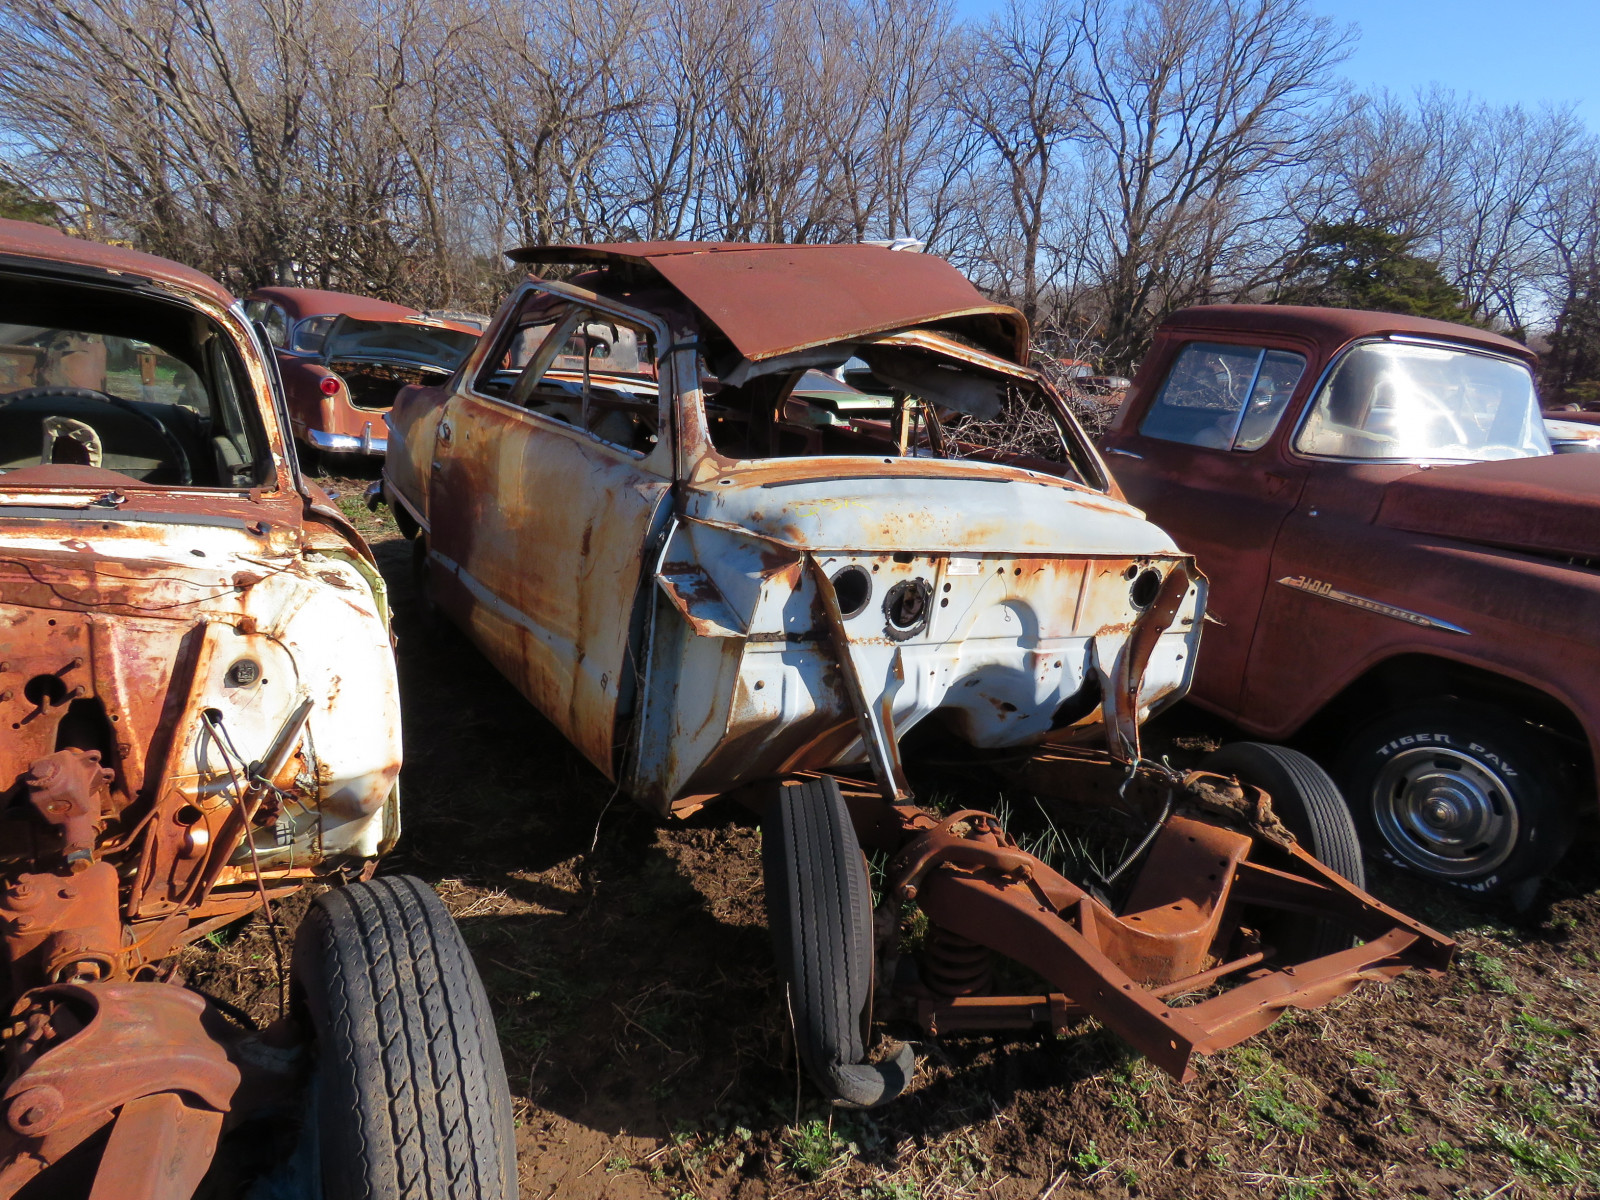 1949/50 Ford Sedan for parts - Image 1